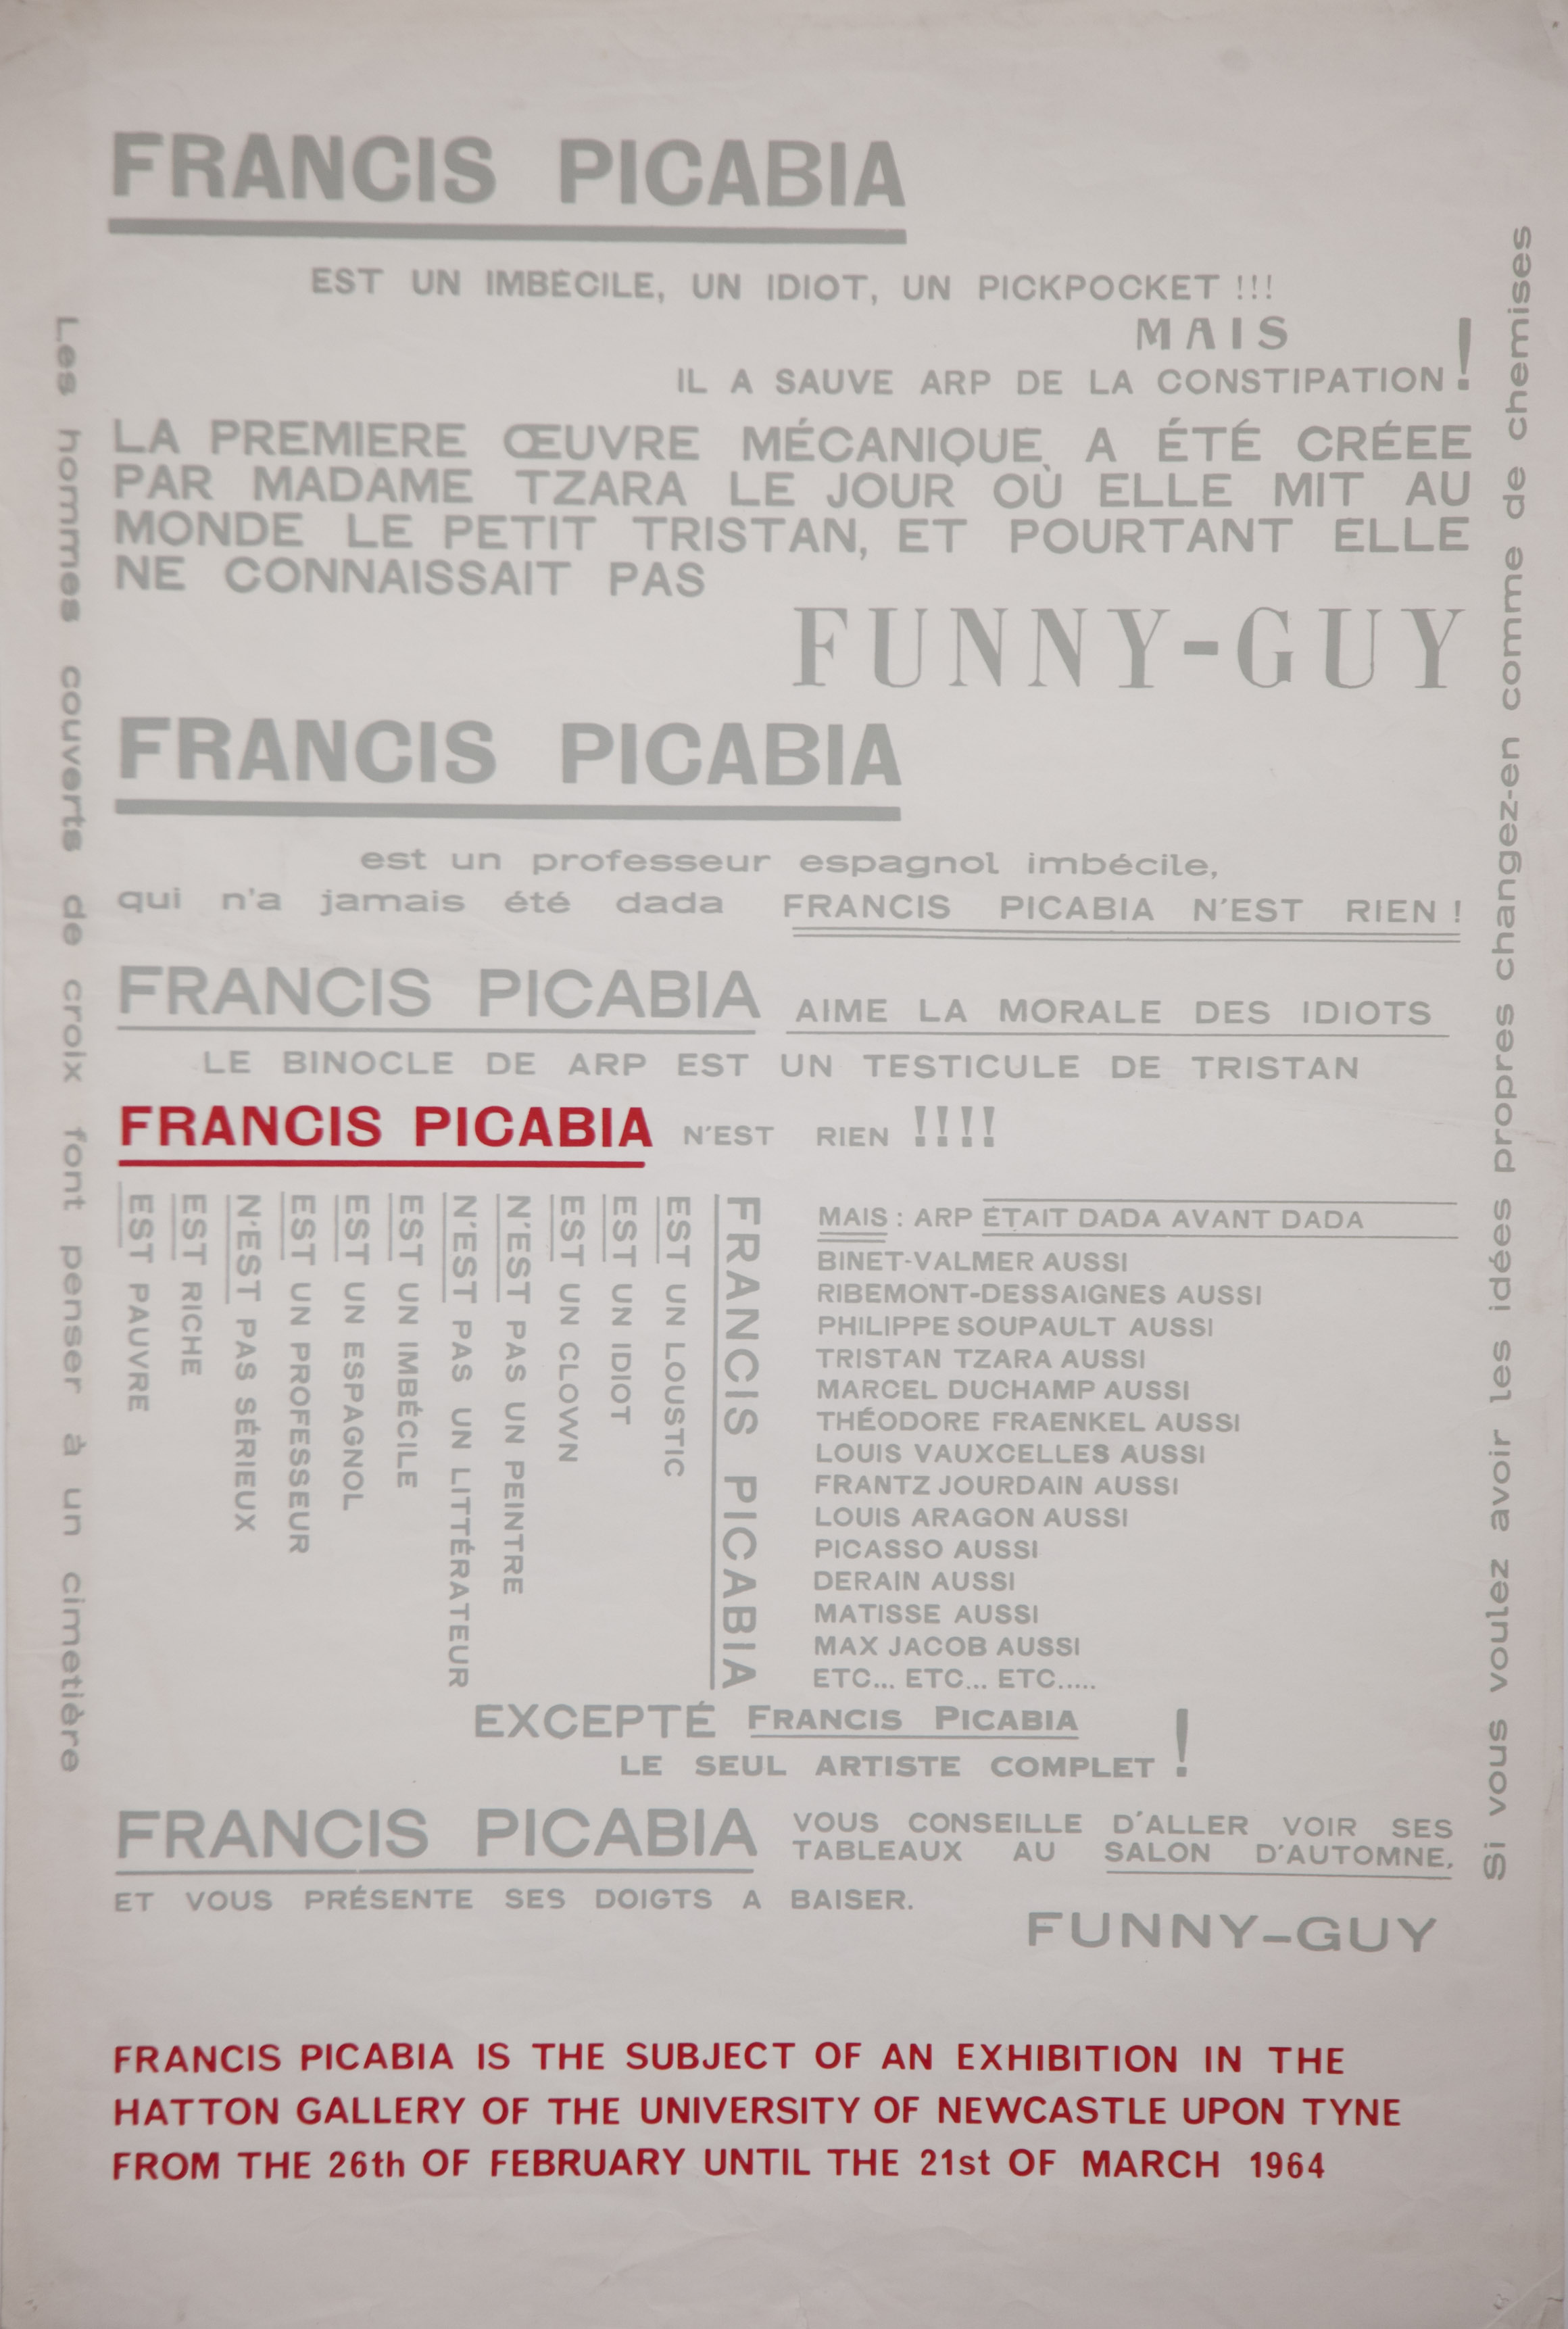 Poster for a 1964 Francis Picabia exhibition curated by Richard Hamilton